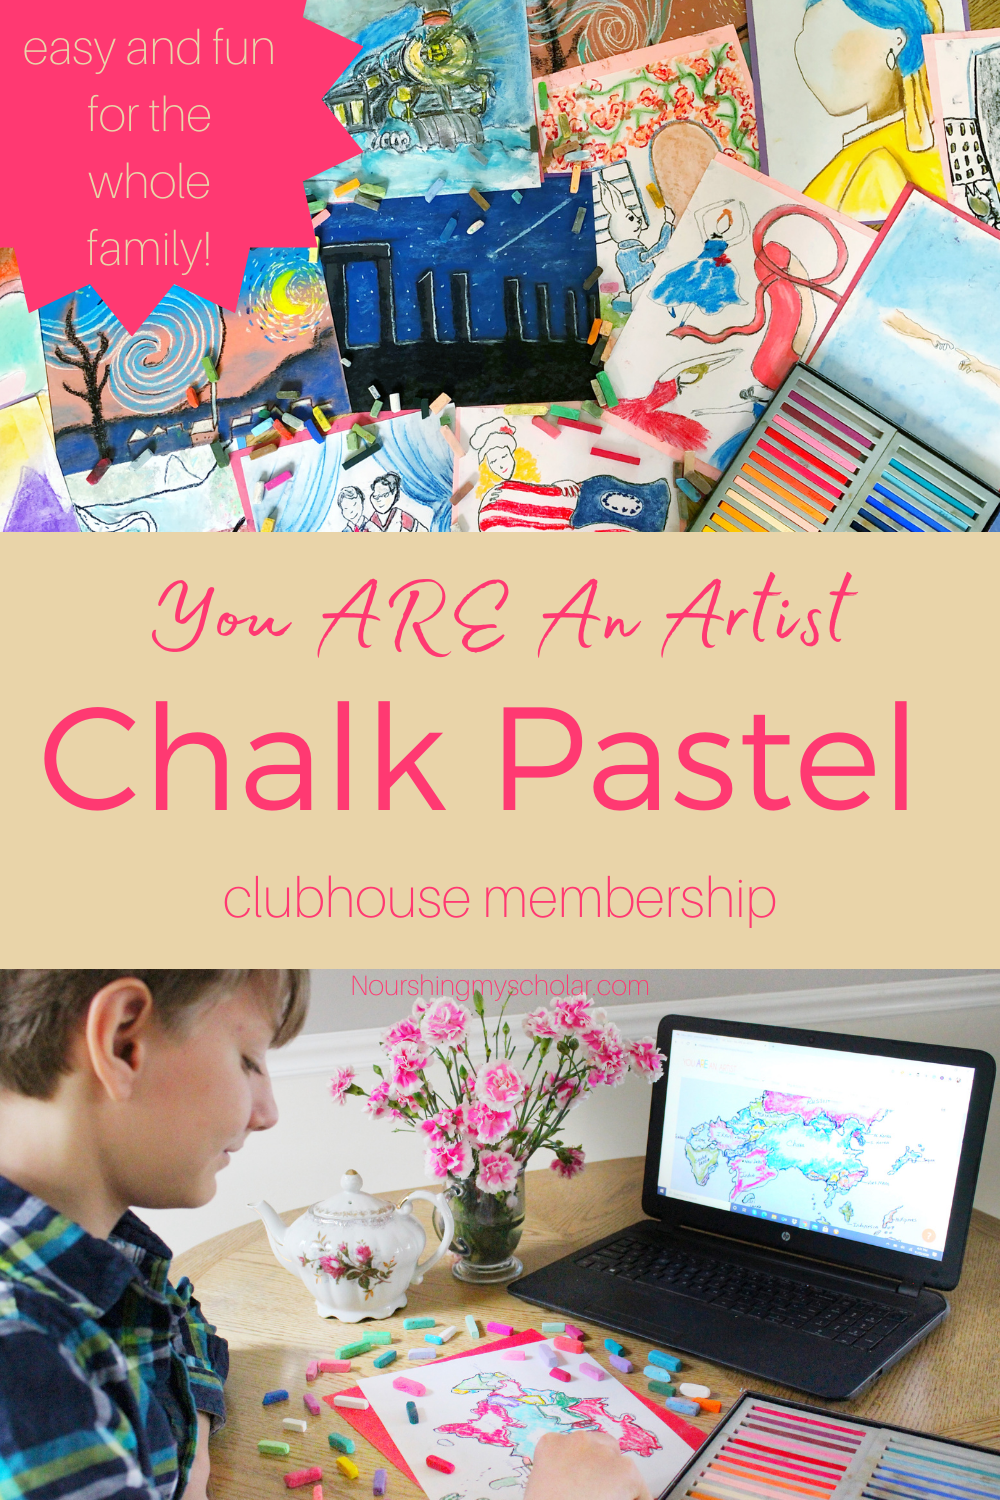 You ARE An Artist Chalk Pastel Clubhouse: Are you looking for an easy way to incorporate art into your homeschool? Are you looking for an art curriculum that's great for kids of all ages? You ARE An Artist Chalk Pastel Clubhouse is quick, easy, and perfect for ages Pre-school through adult! #homeschool #art #homeschoolart #artlessons #artlessonsforkids #chalkpastels #chalkpastelsforkids #chalkpastelmembership #chalkpastelclubhouse #youareanartist